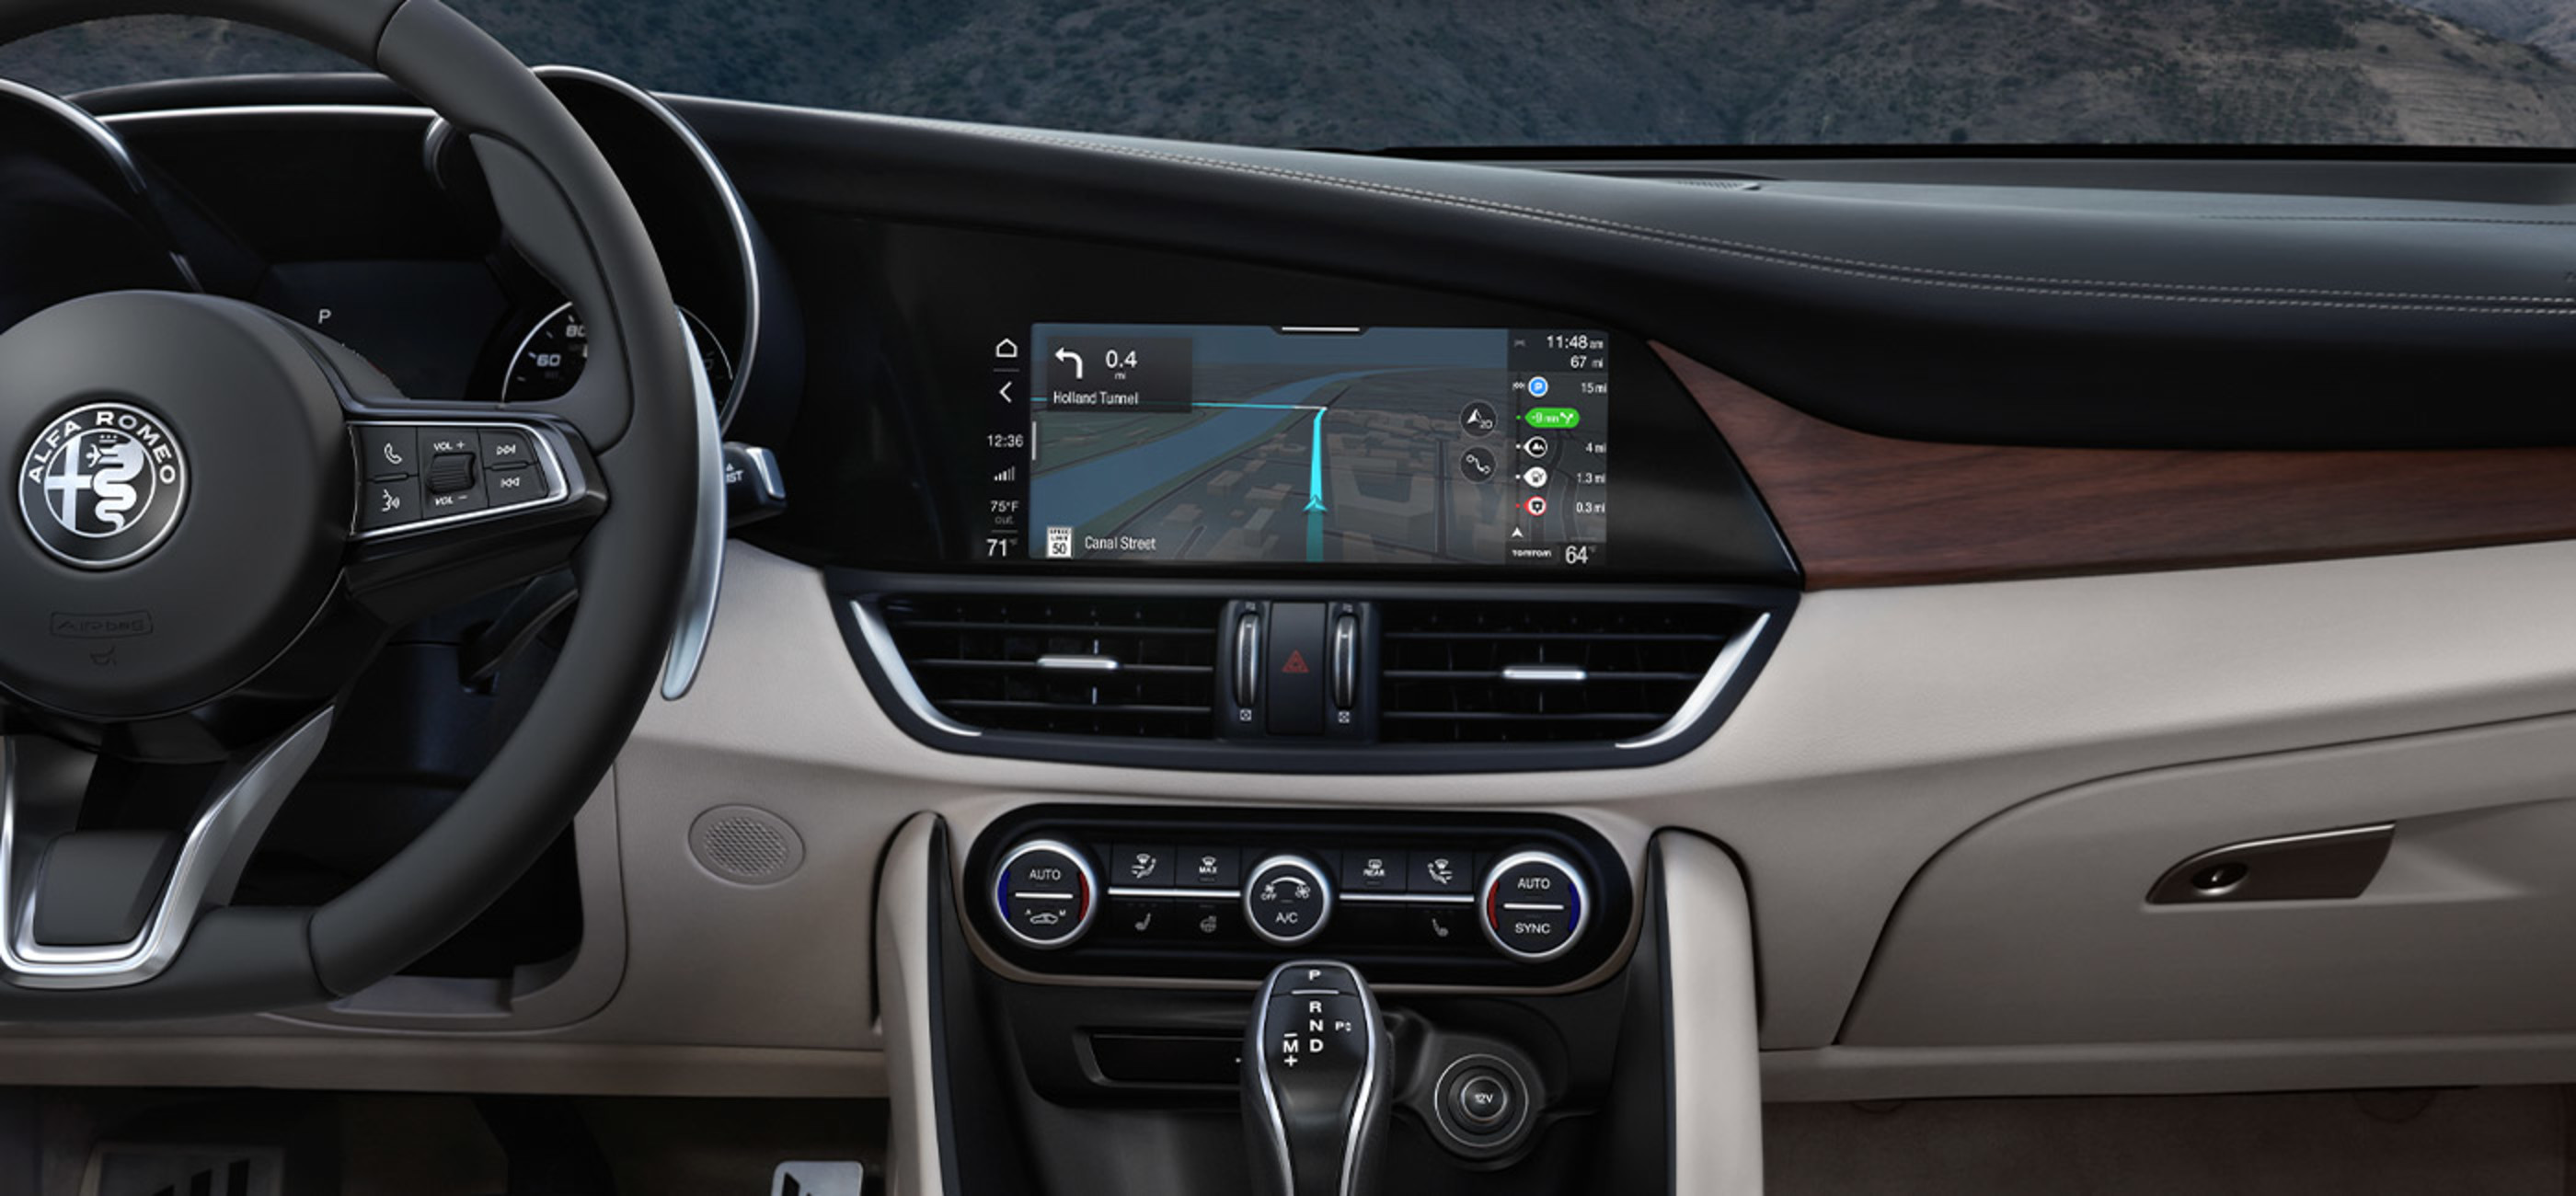 A close-up of the 8.8-inch touchscreen integrated into the dash of the Alfa Romeo Giulia.